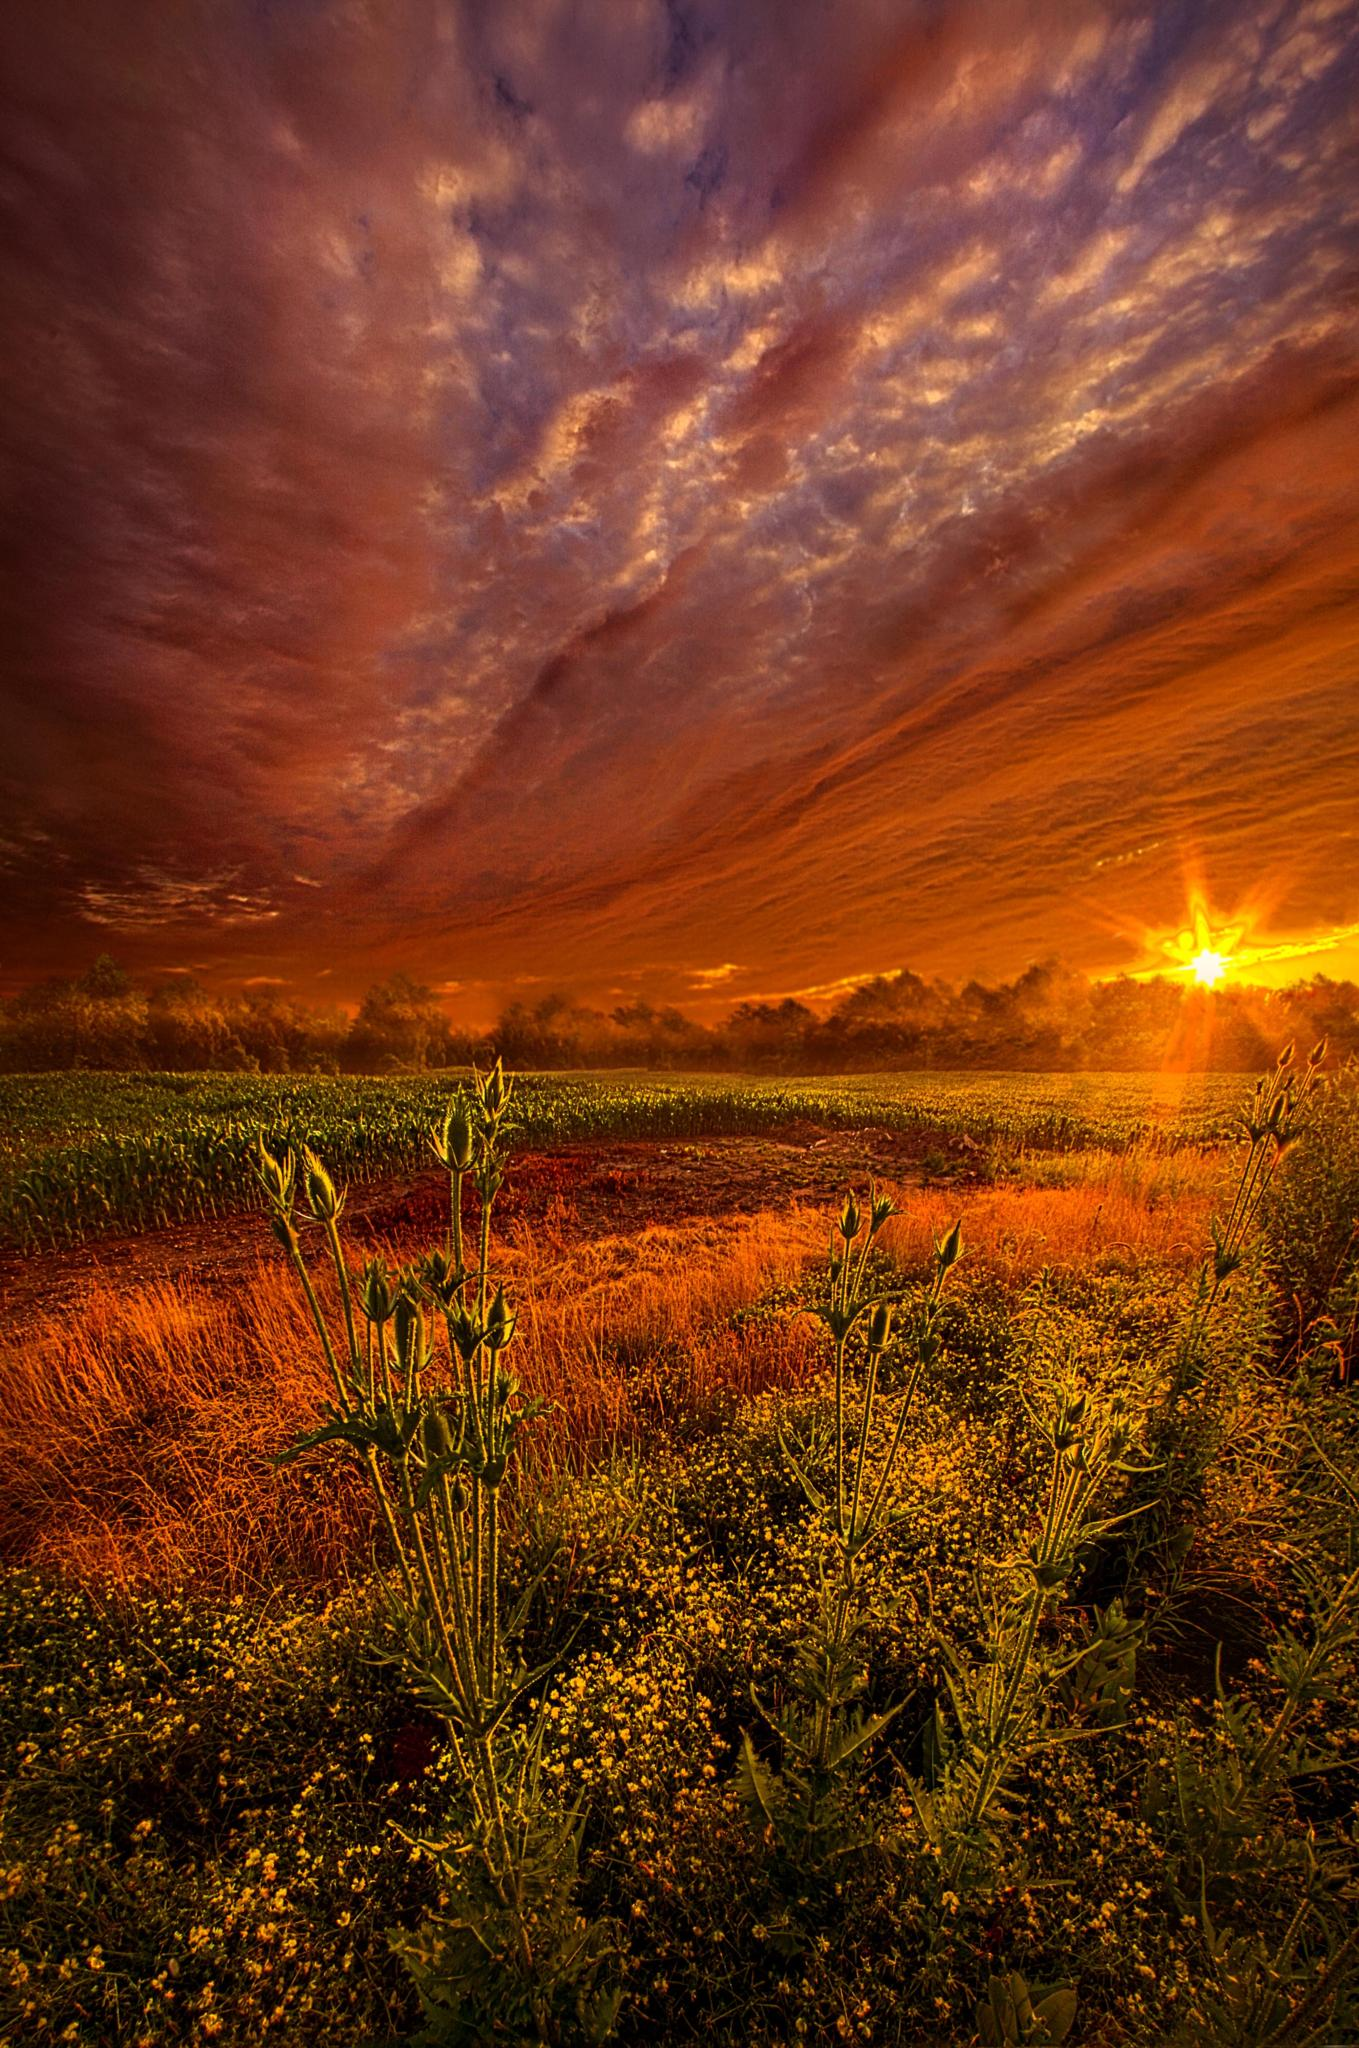 The Never Ending Story by PhilKoch